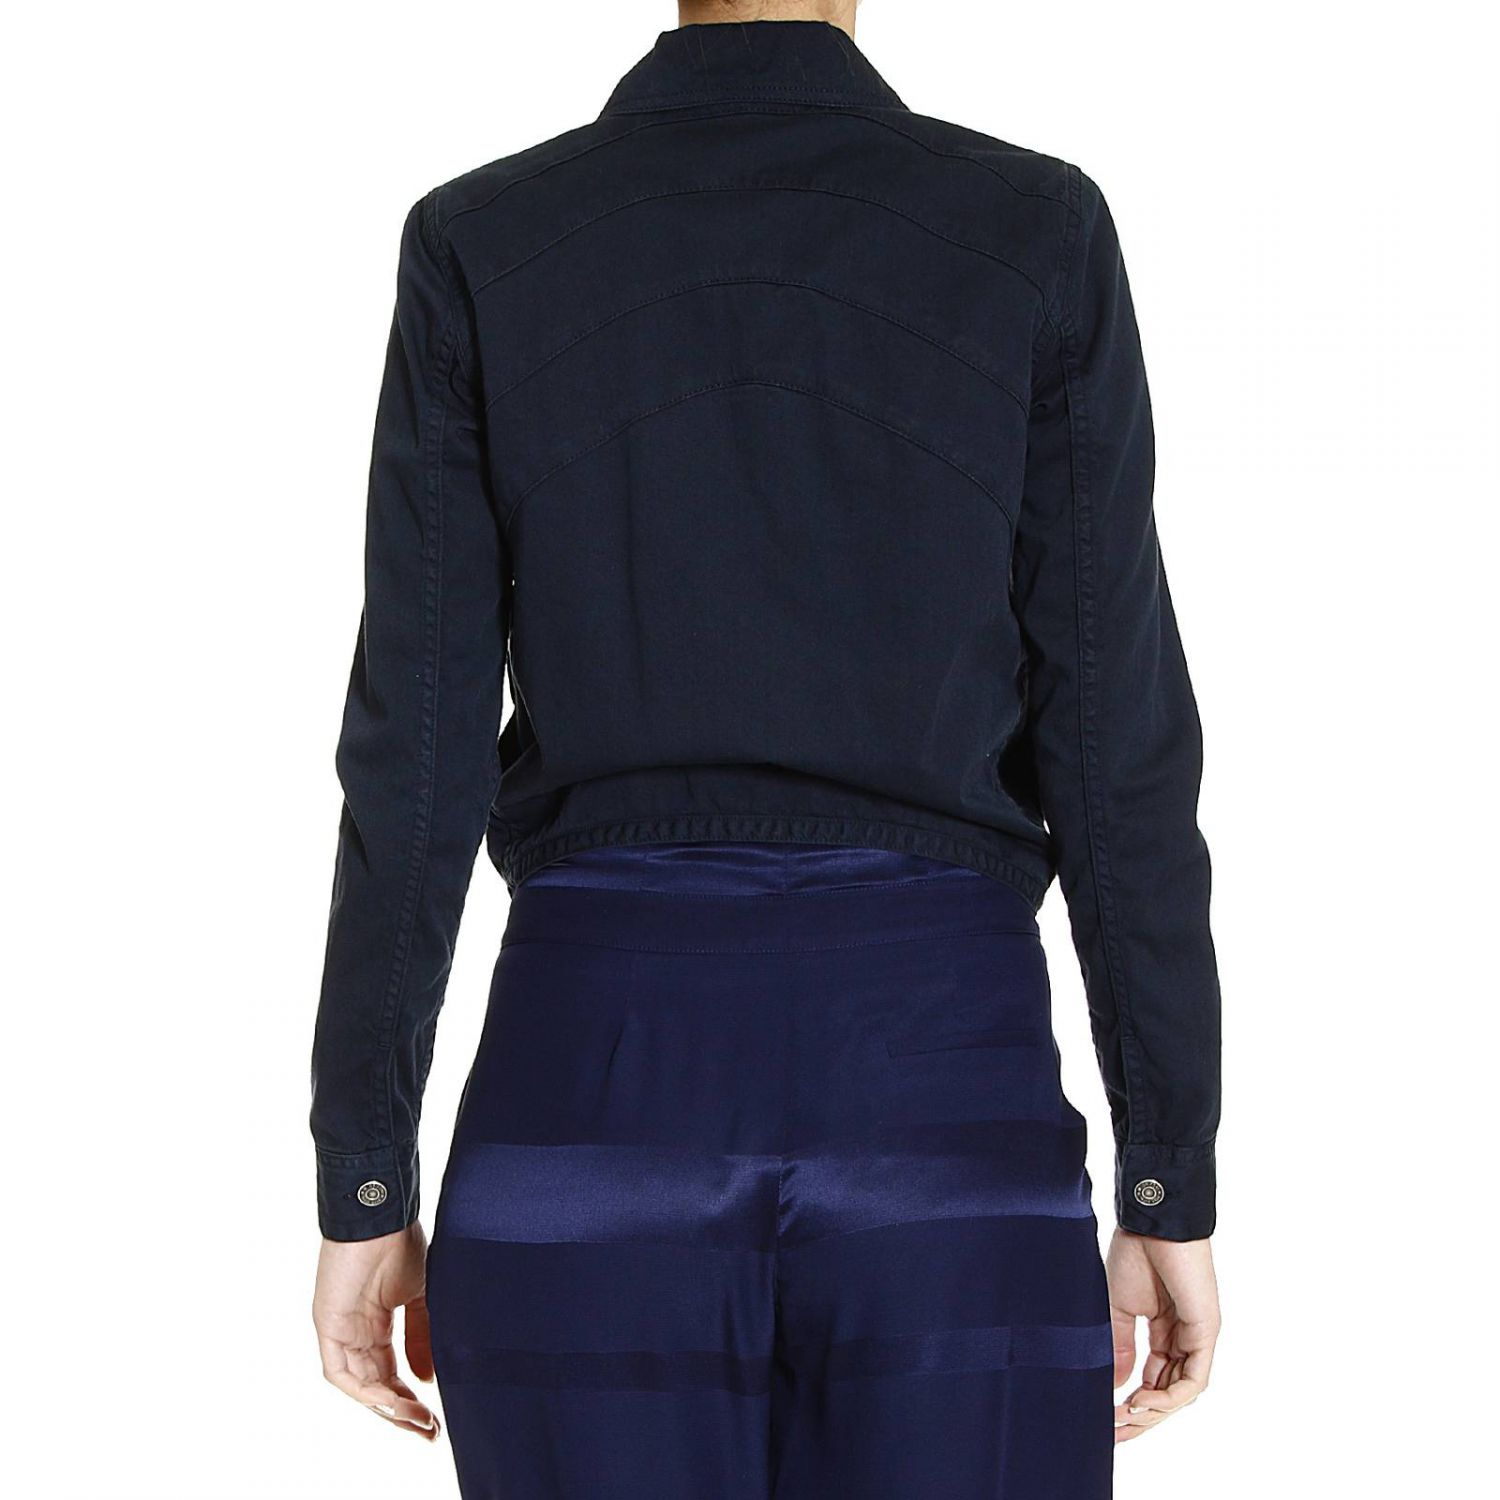 Free shipping BOTH ways on blue jackets women, from our vast selection of styles. Fast delivery, and 24/7/ real-person service with a smile. Click or call